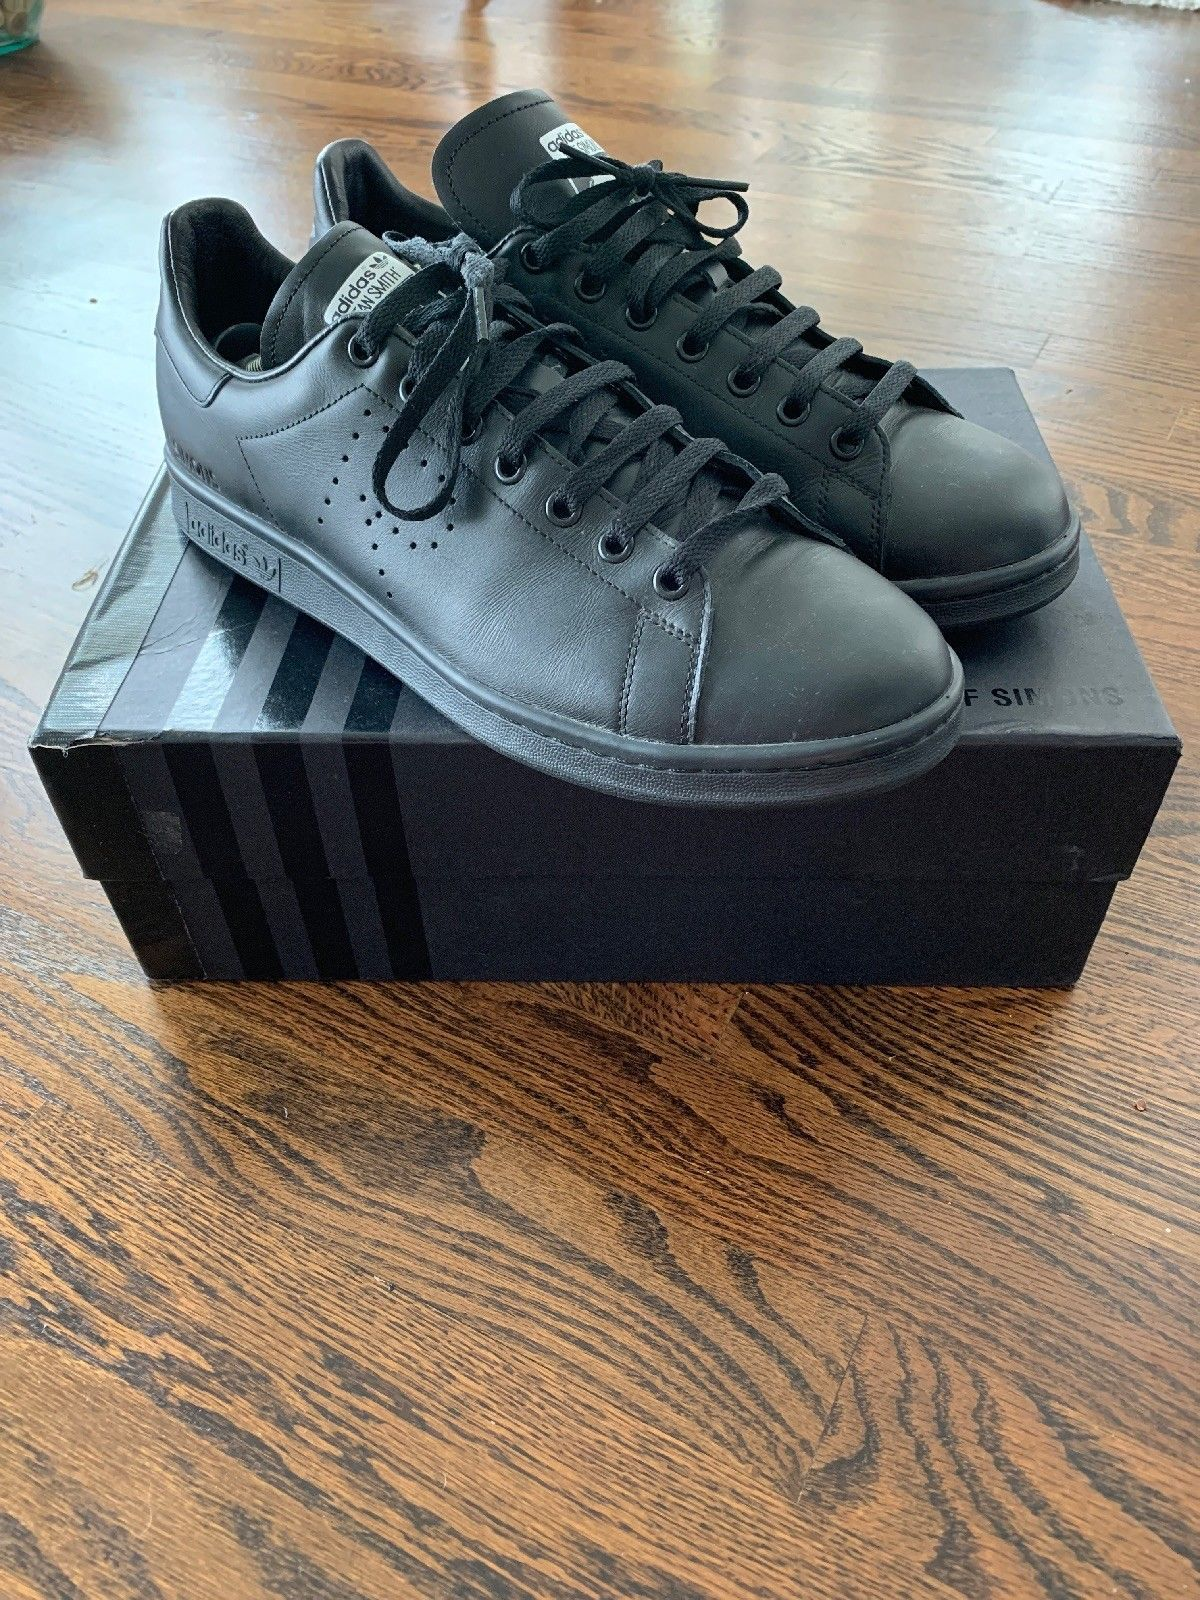 new arrival 8baa2 62fa5 Details about Adidas Raf Simons Stan Smith 11.5 NEW ...